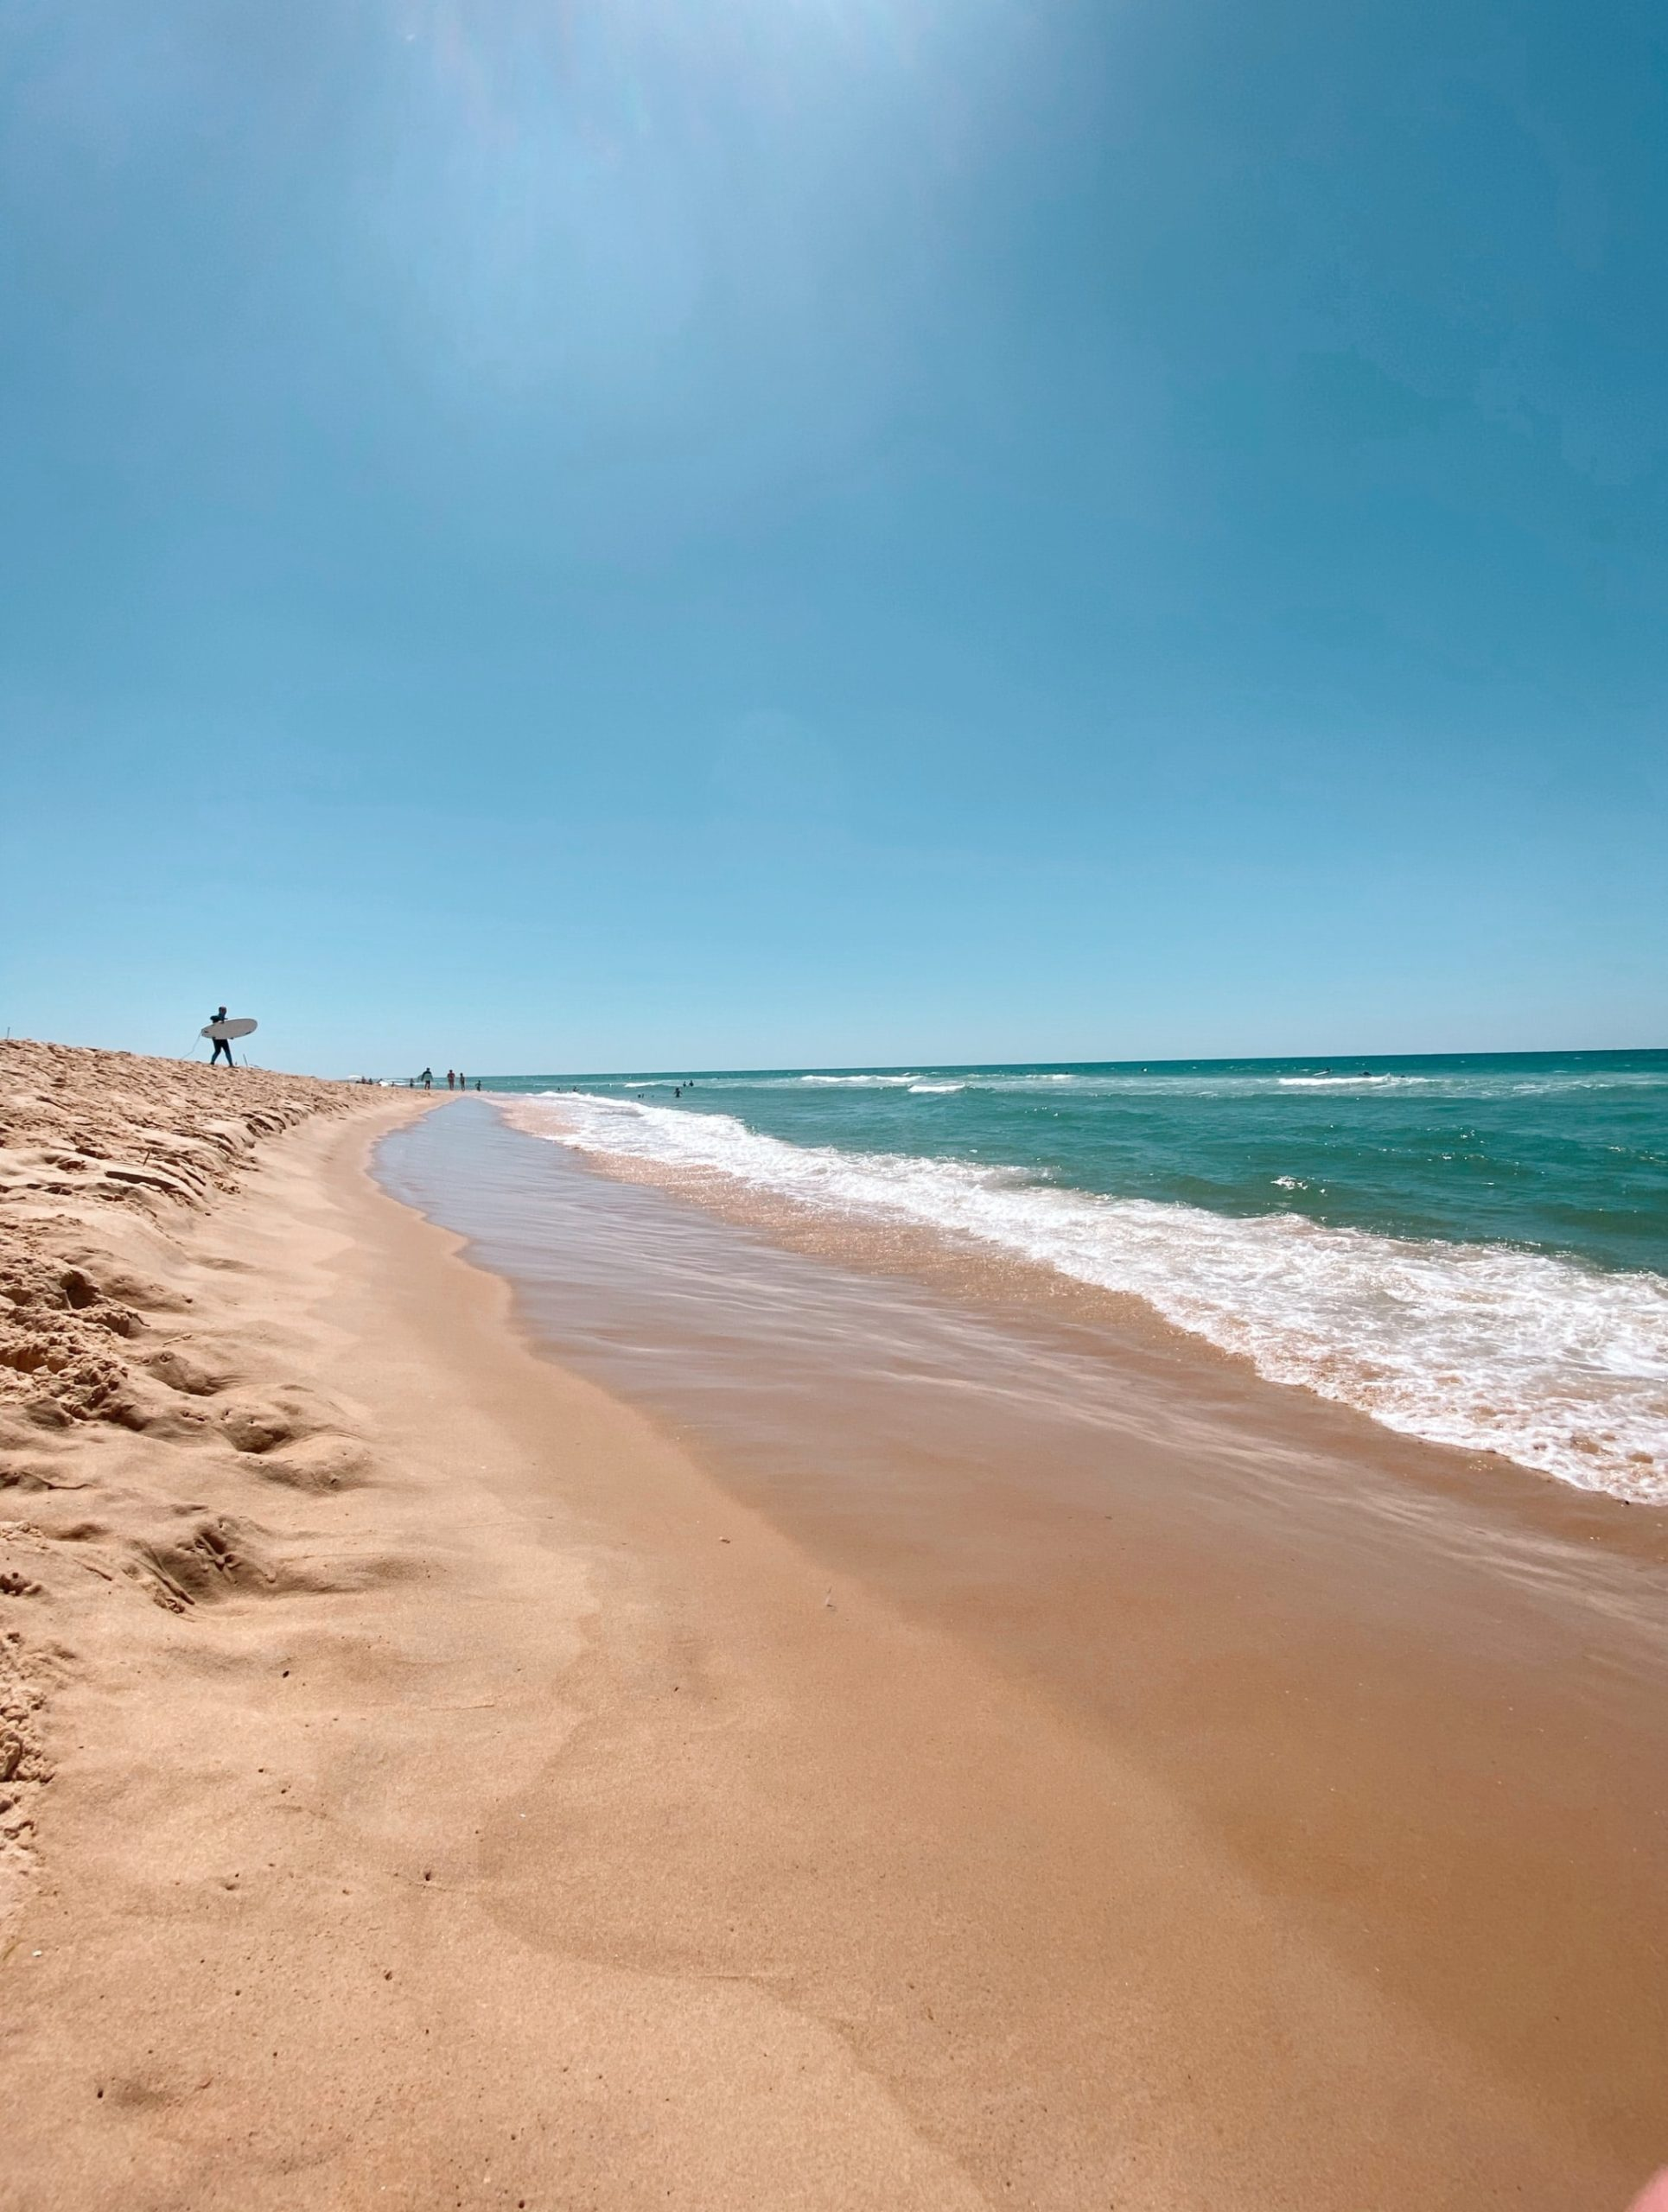 Sparkling European holidays Imagine taking your surfboard across the warm sands at Le Porge, France.